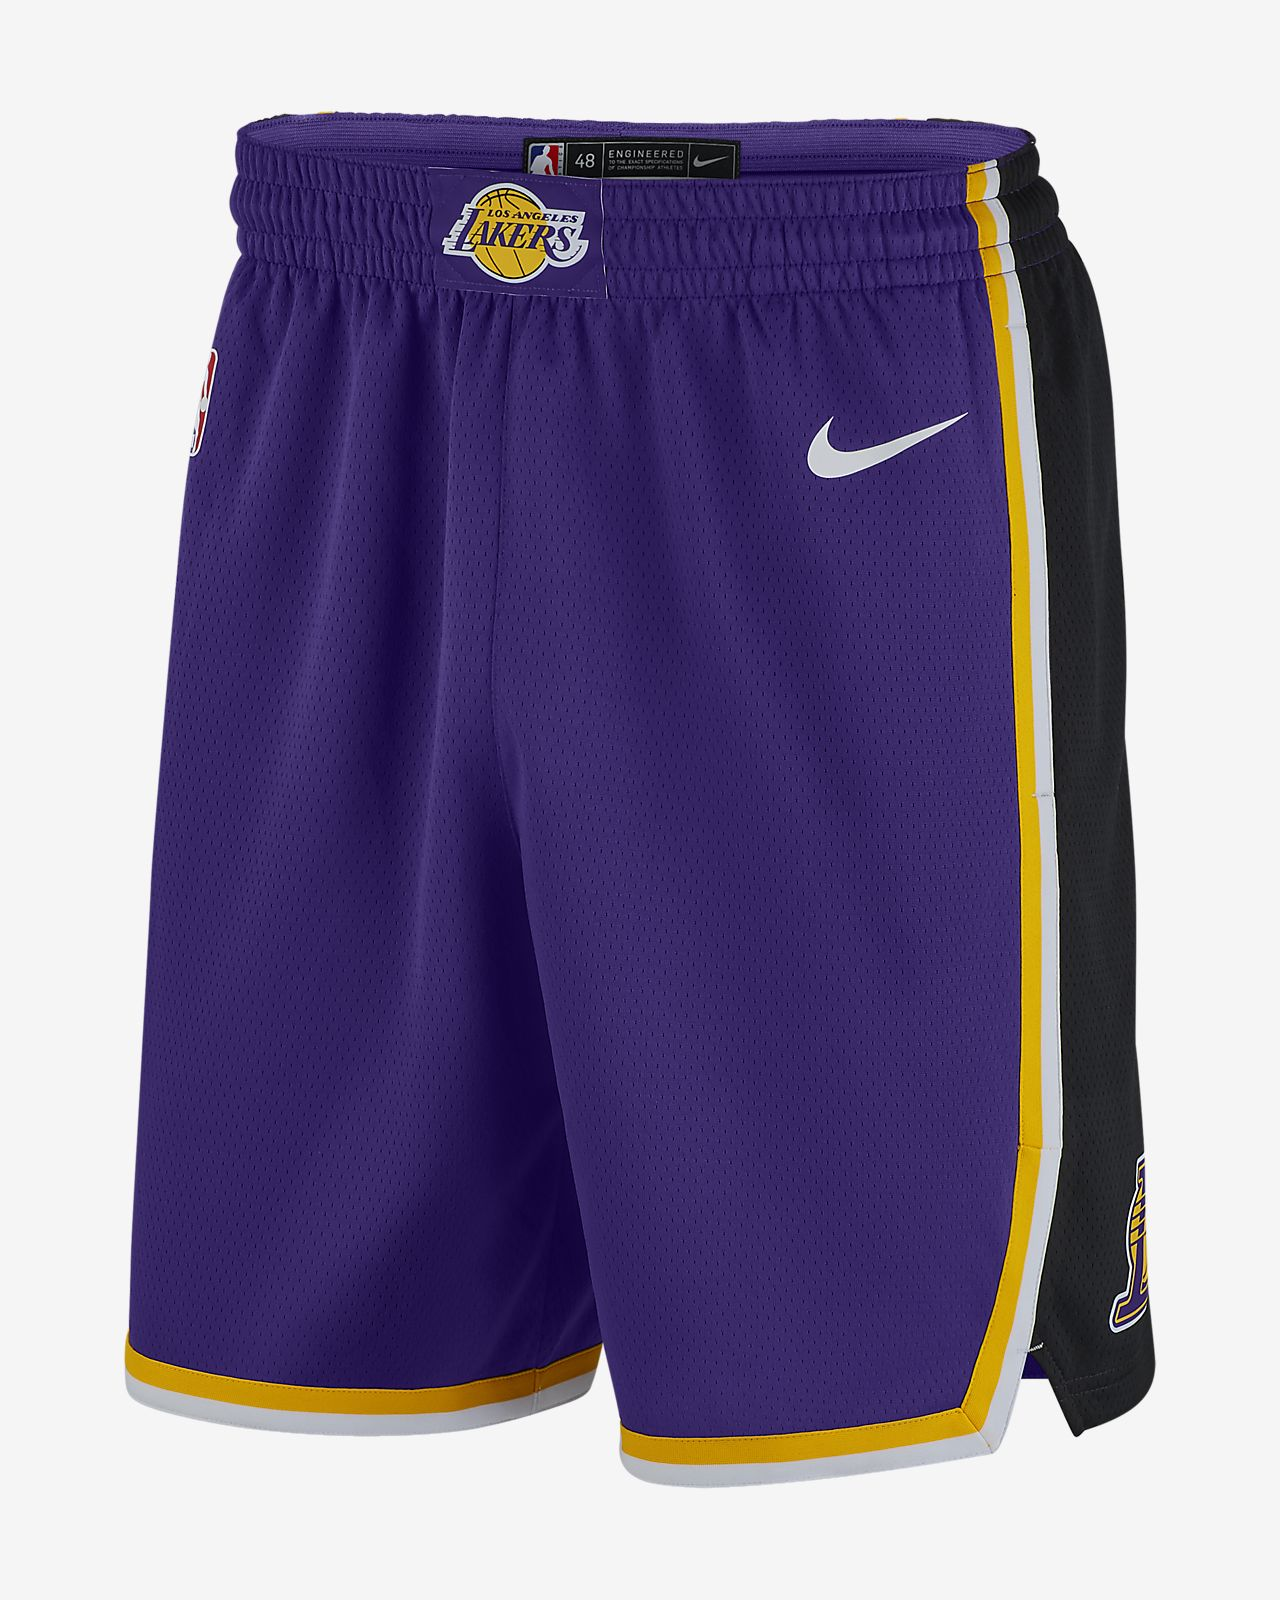 Shorts Nike NBA para hombre Los Angeles Lakers Statement Edition Swingman